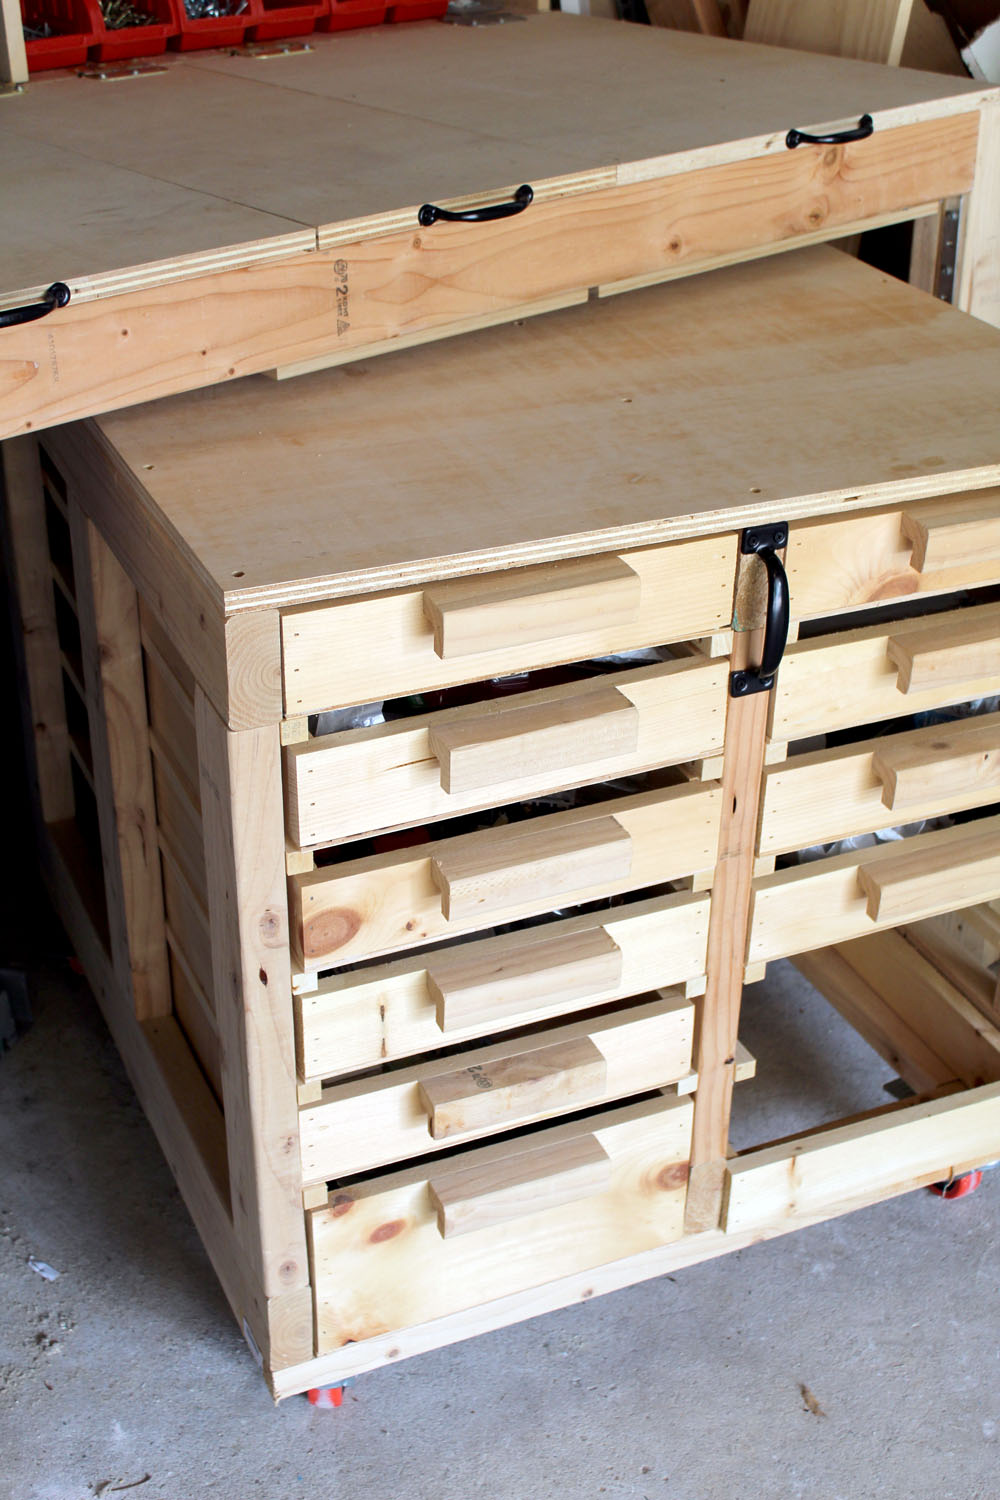 Custom-made DIY rolling workbench with tons of storage and organization